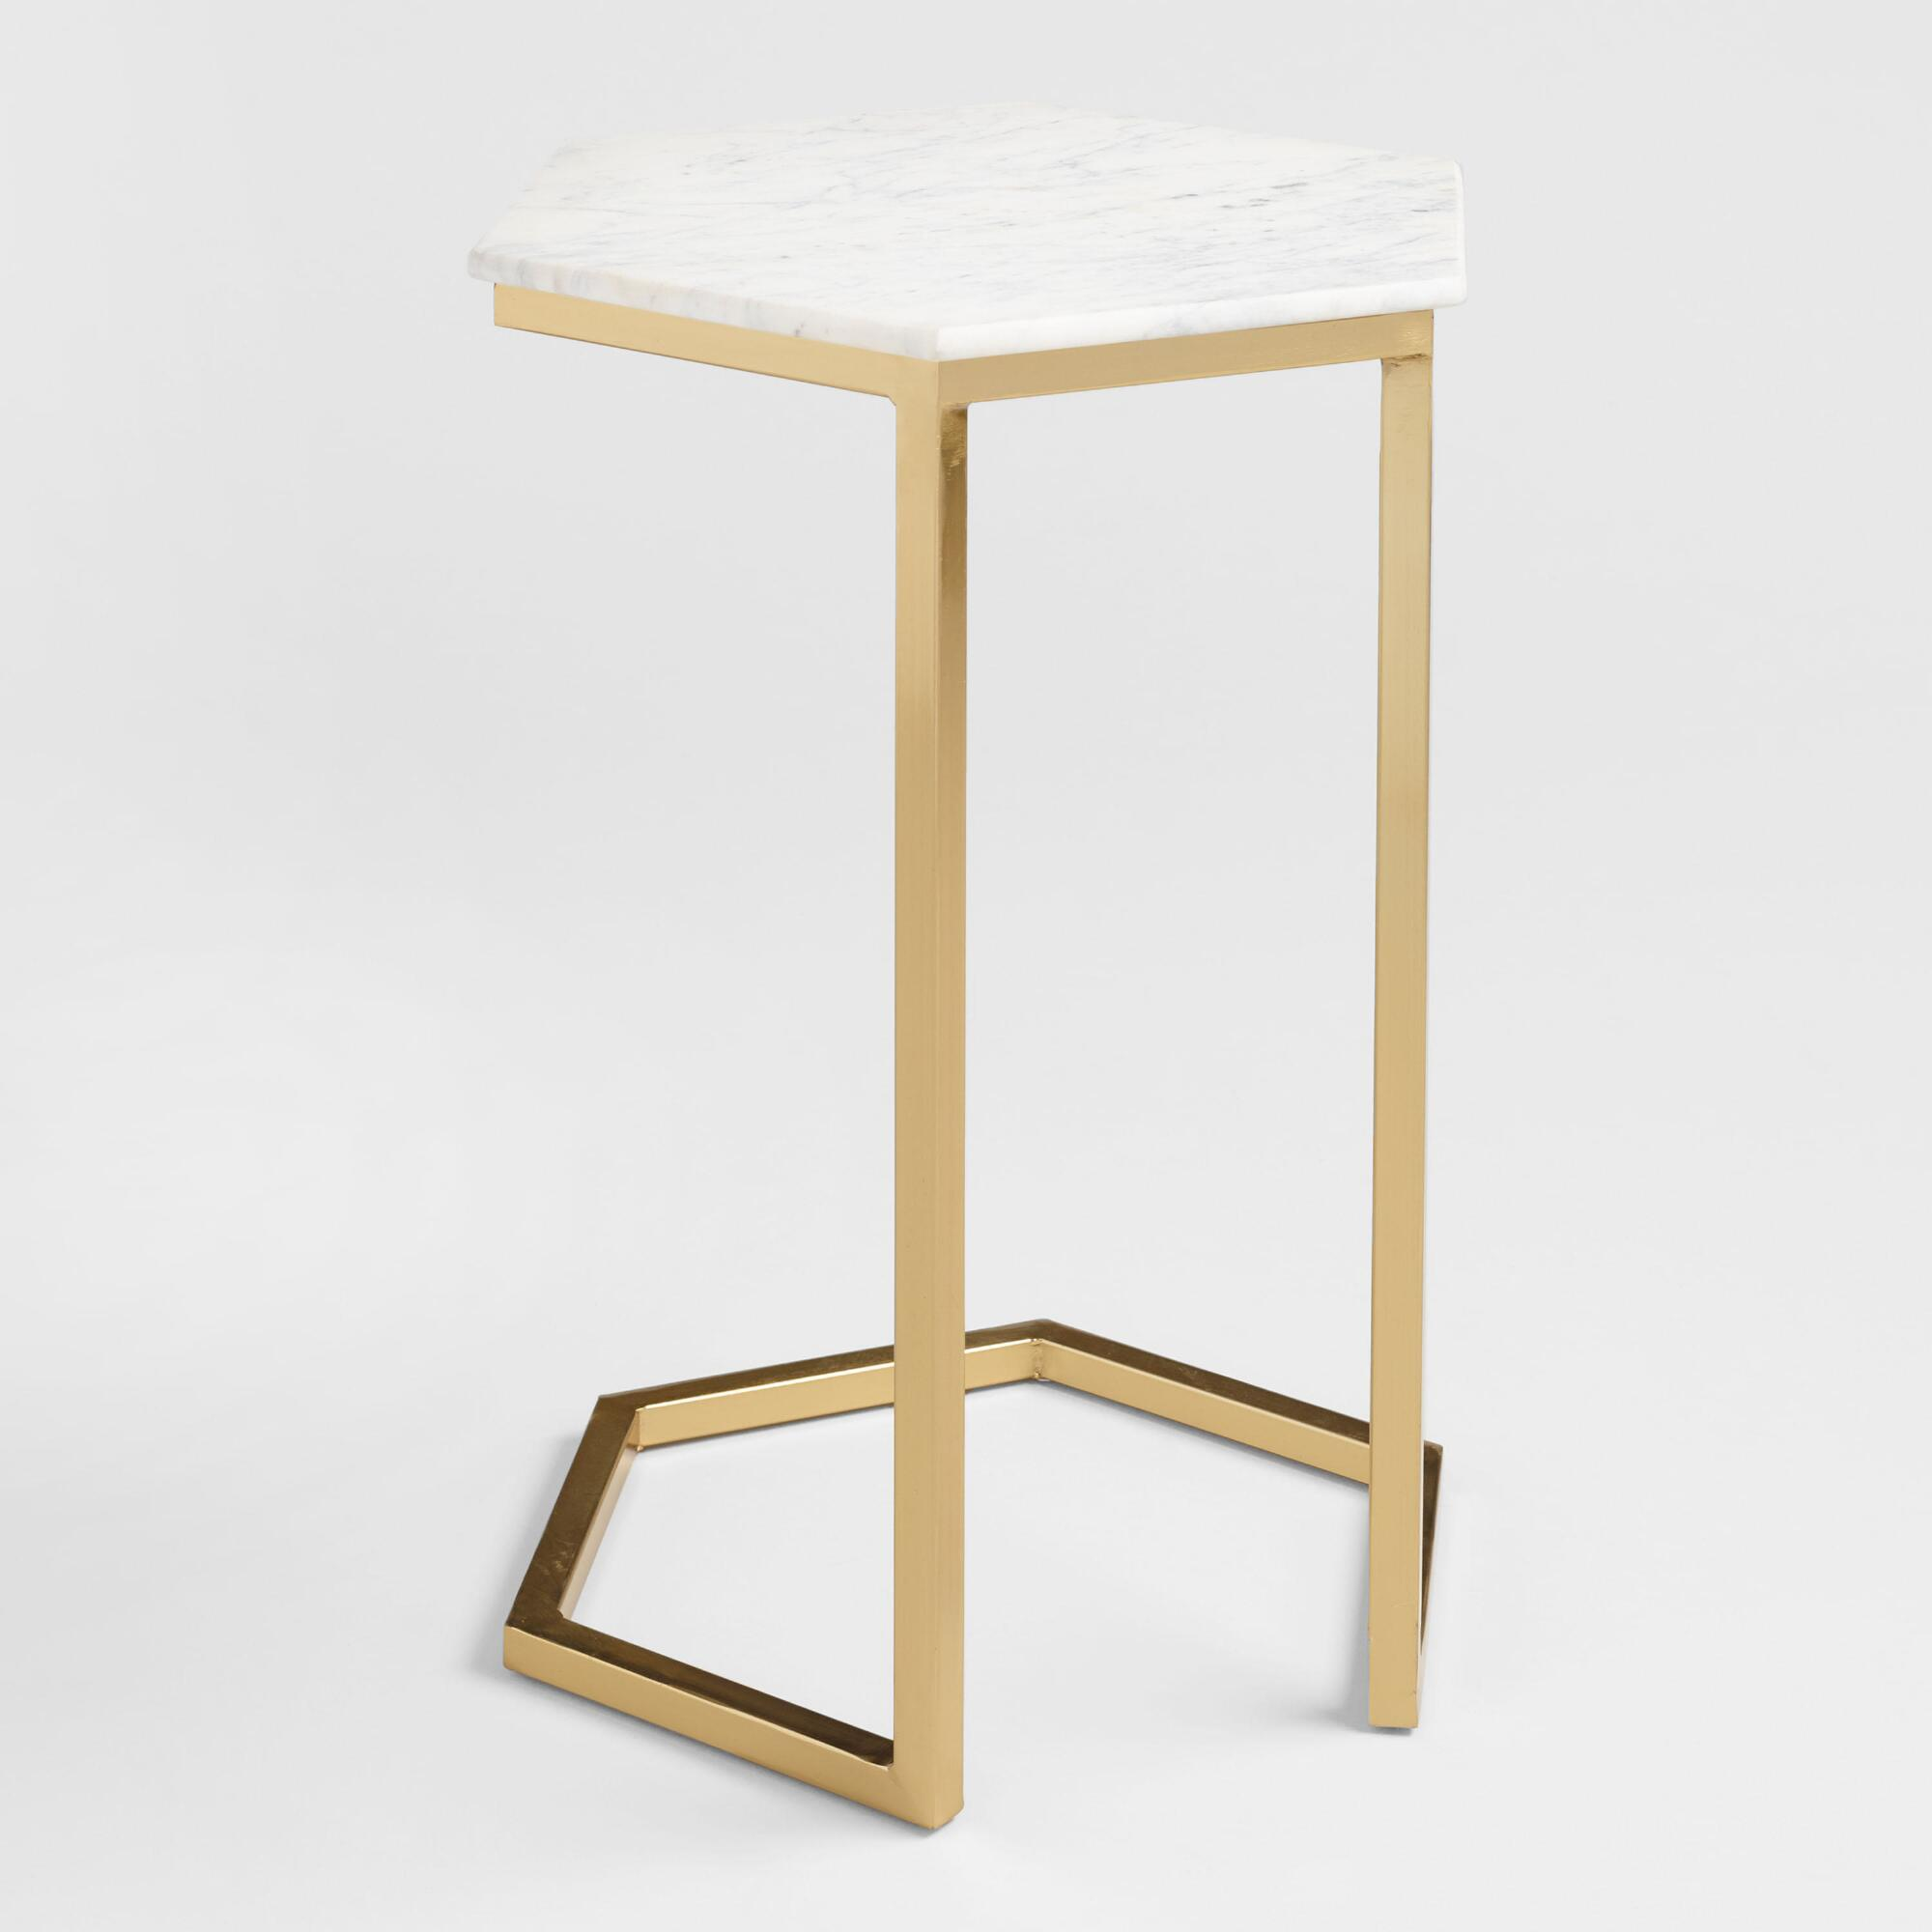 small space coffee side tables world market iipsrv fcgi metal virgil accent table marble and gold margaux laptop umbrella kitchen legs bridal shower basket ideas door console